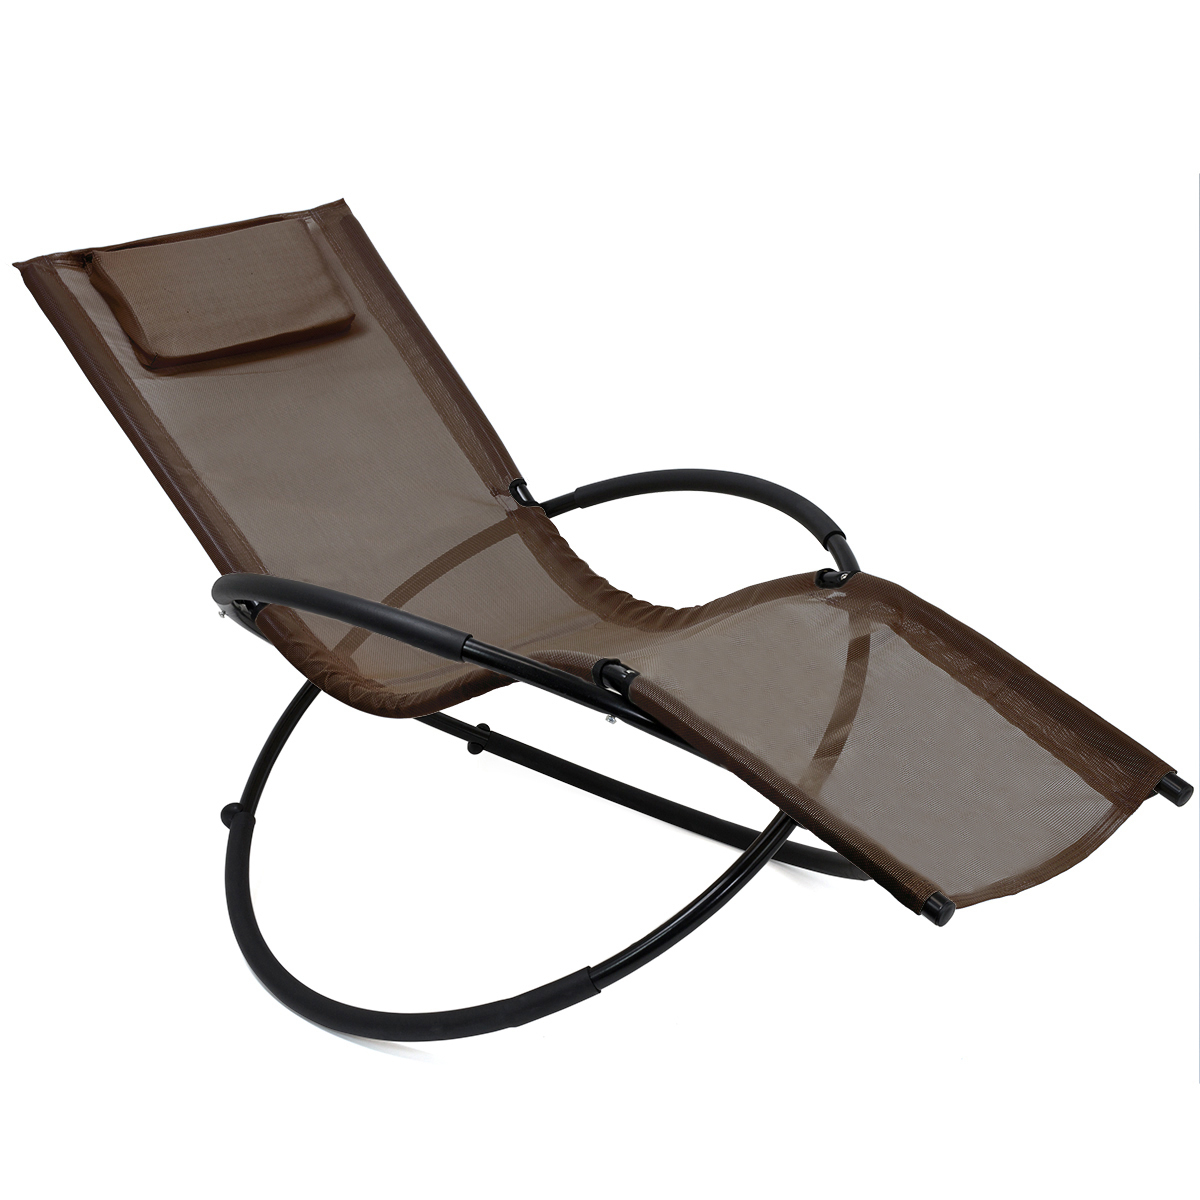 Orbital Patio Lounger Rocking Chairs Pertaining To Newest Details About Folding Orbit Zero Gravity Chair Patio Garden Lounger Rocking Outdoor, Brown (View 22 of 25)